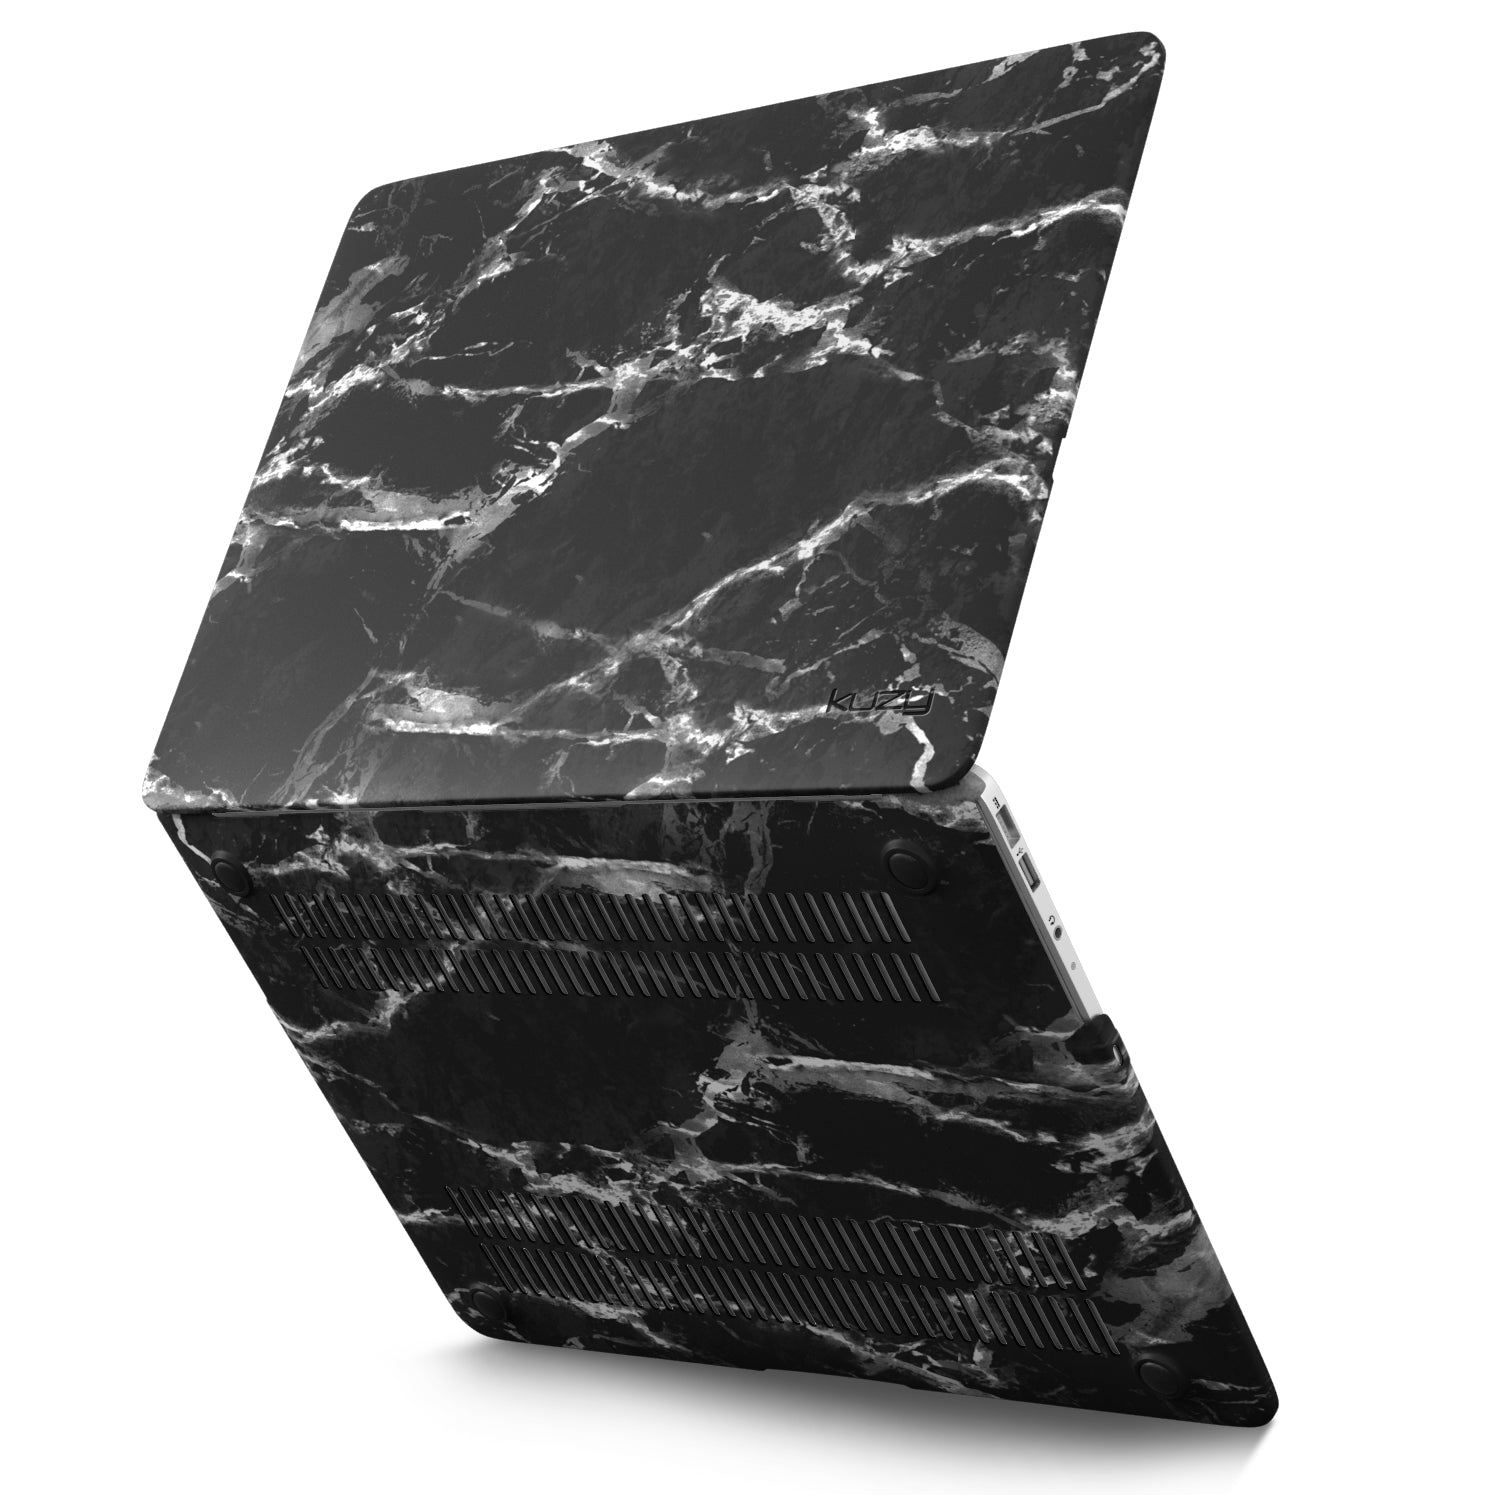 quality design 9ed6d 41bb0 Marble Hard Case for MacBook Air 13-inch A1466